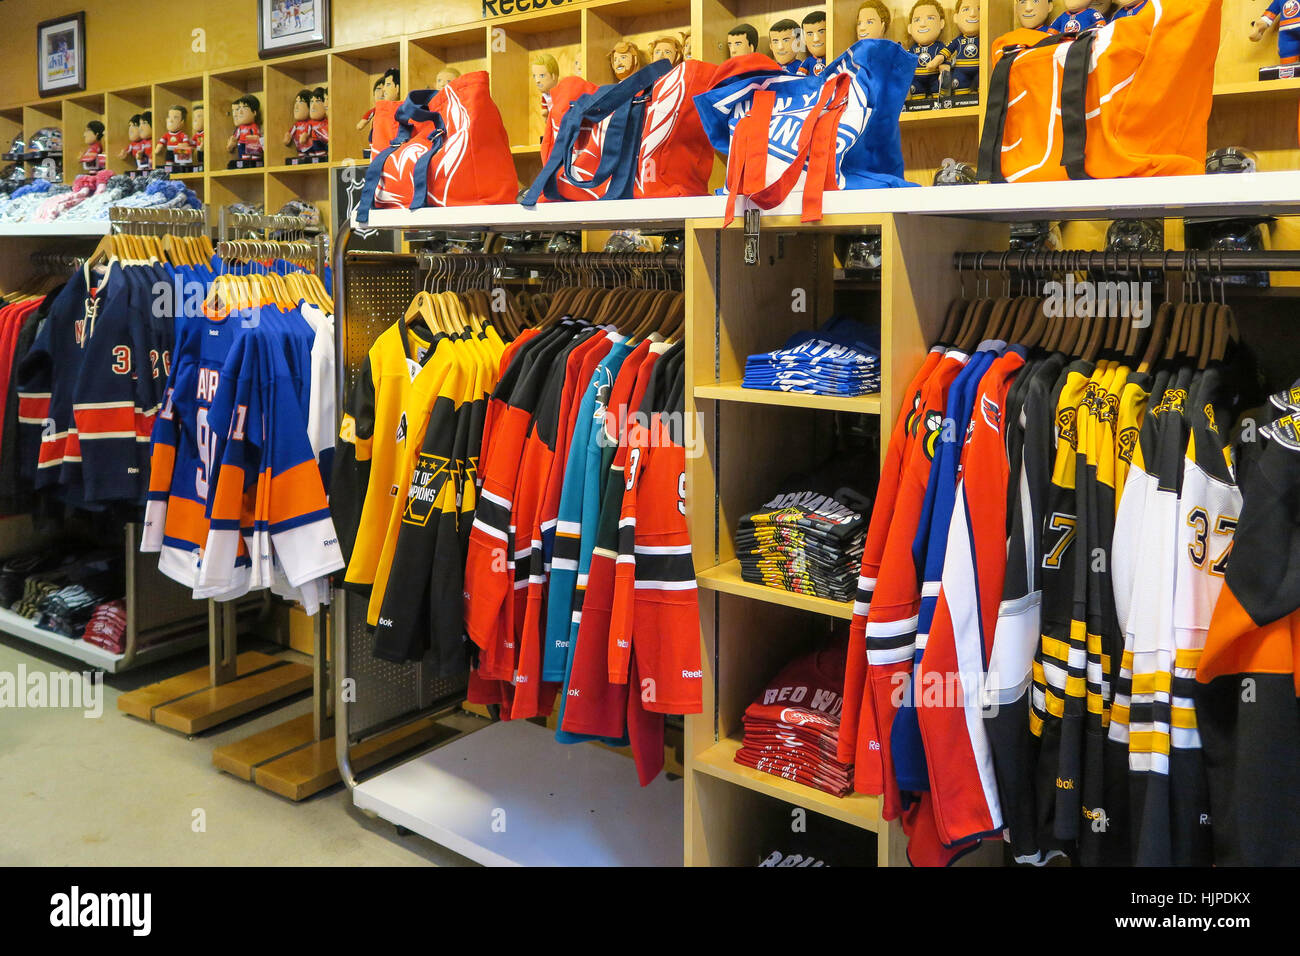 da8f2f8db93 NHL Powered by Reebok Store, 1185 Avenue of the Americas, at the corner of